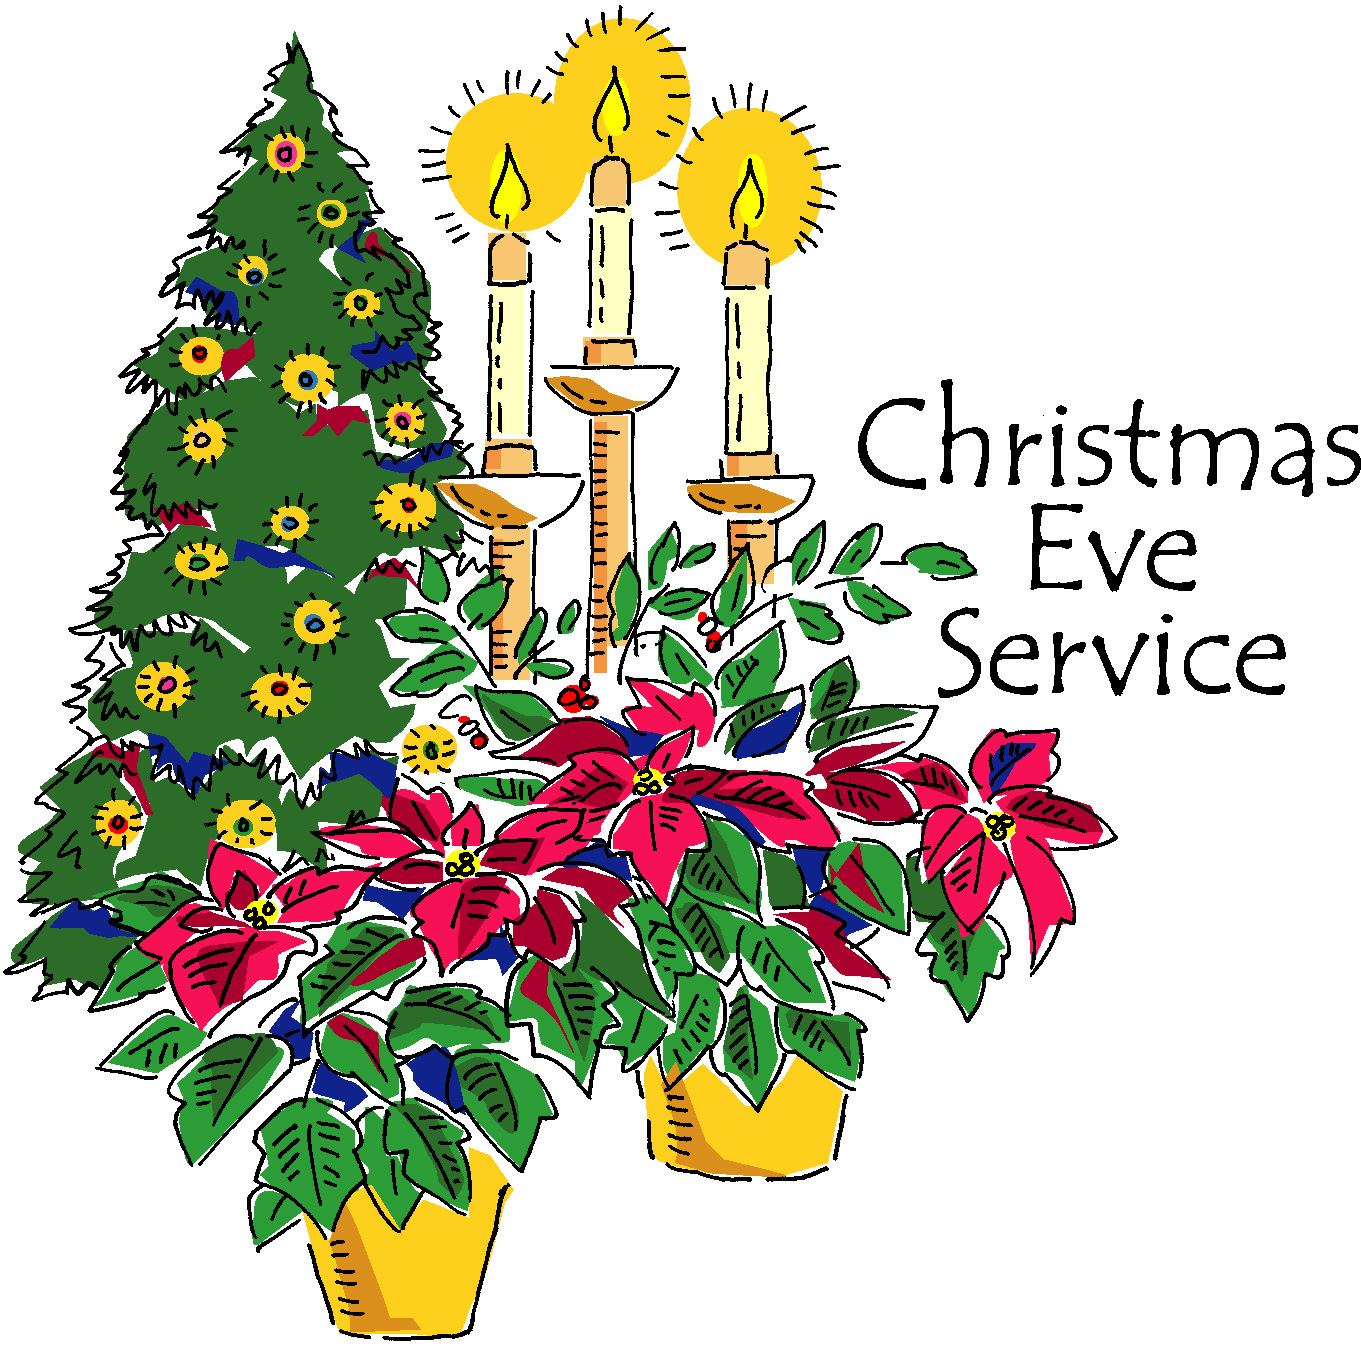 christmas eve service clipart - photo #3